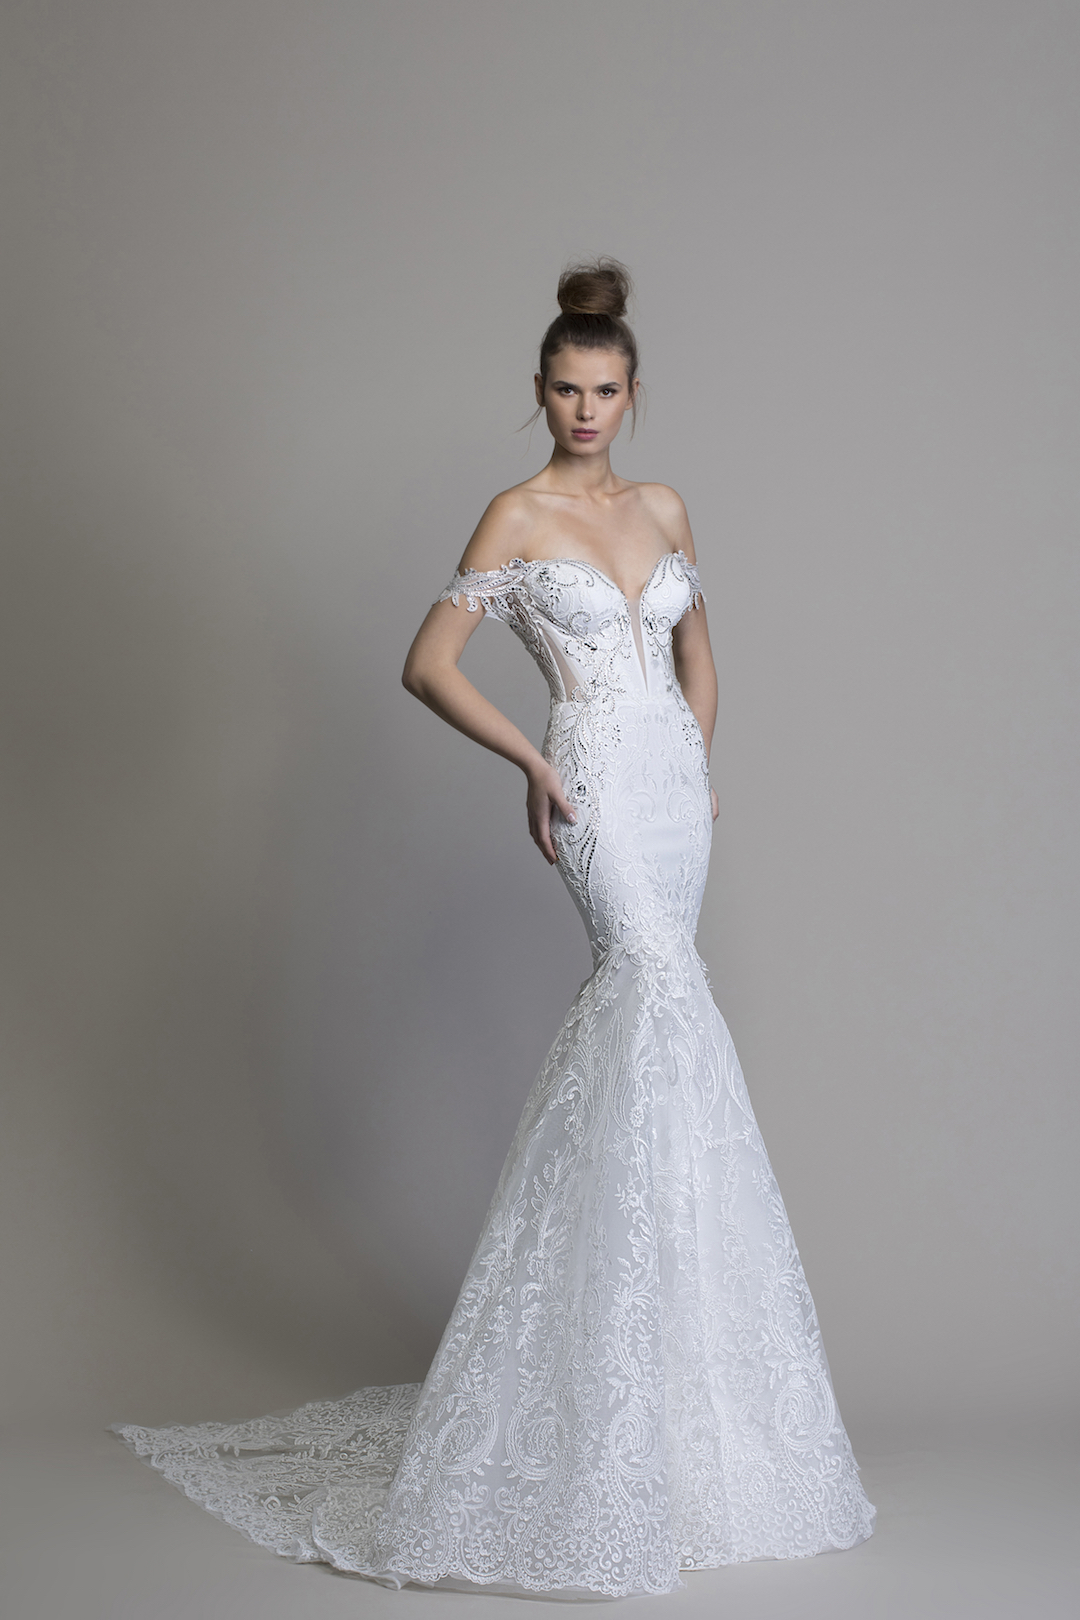 Pnina Tornai's new LOVE 2020 Collection is out! This is style 14776